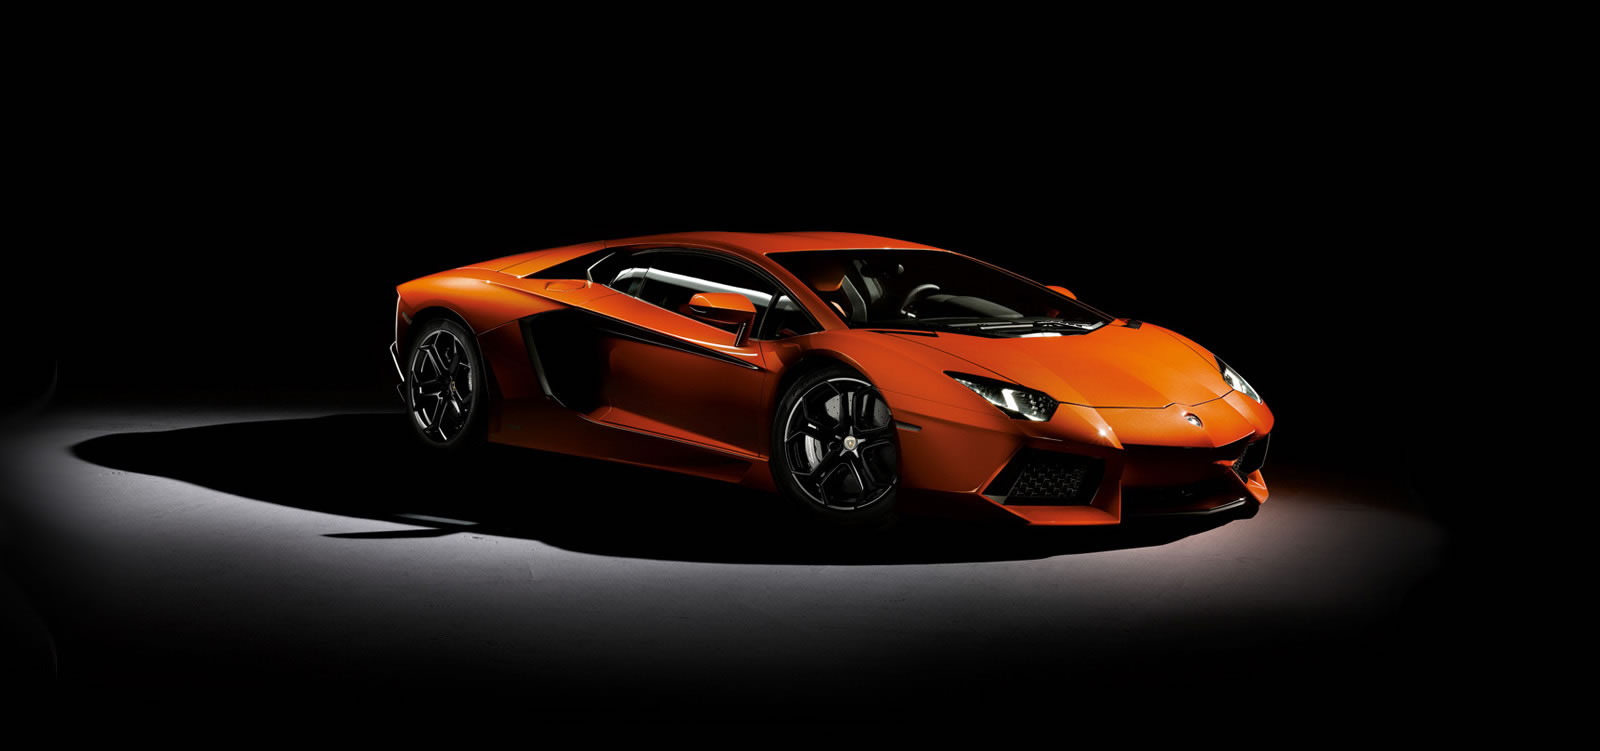 Hd-Car wallpapers: lamborghini aventador lp700-4